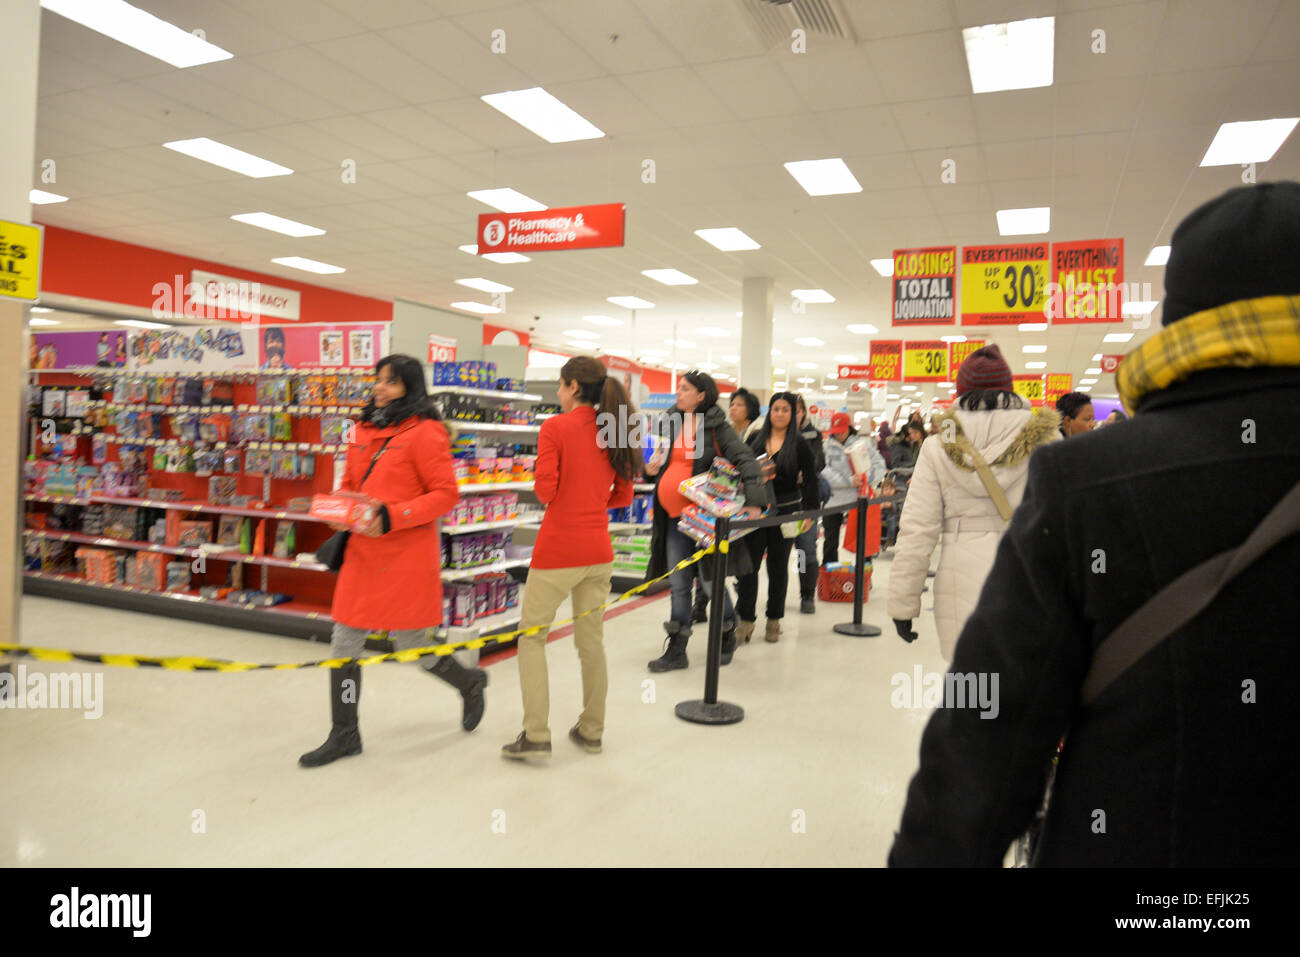 Liquidation Stores In Gta Toronto Ontario Canada 5th February 2015 Target